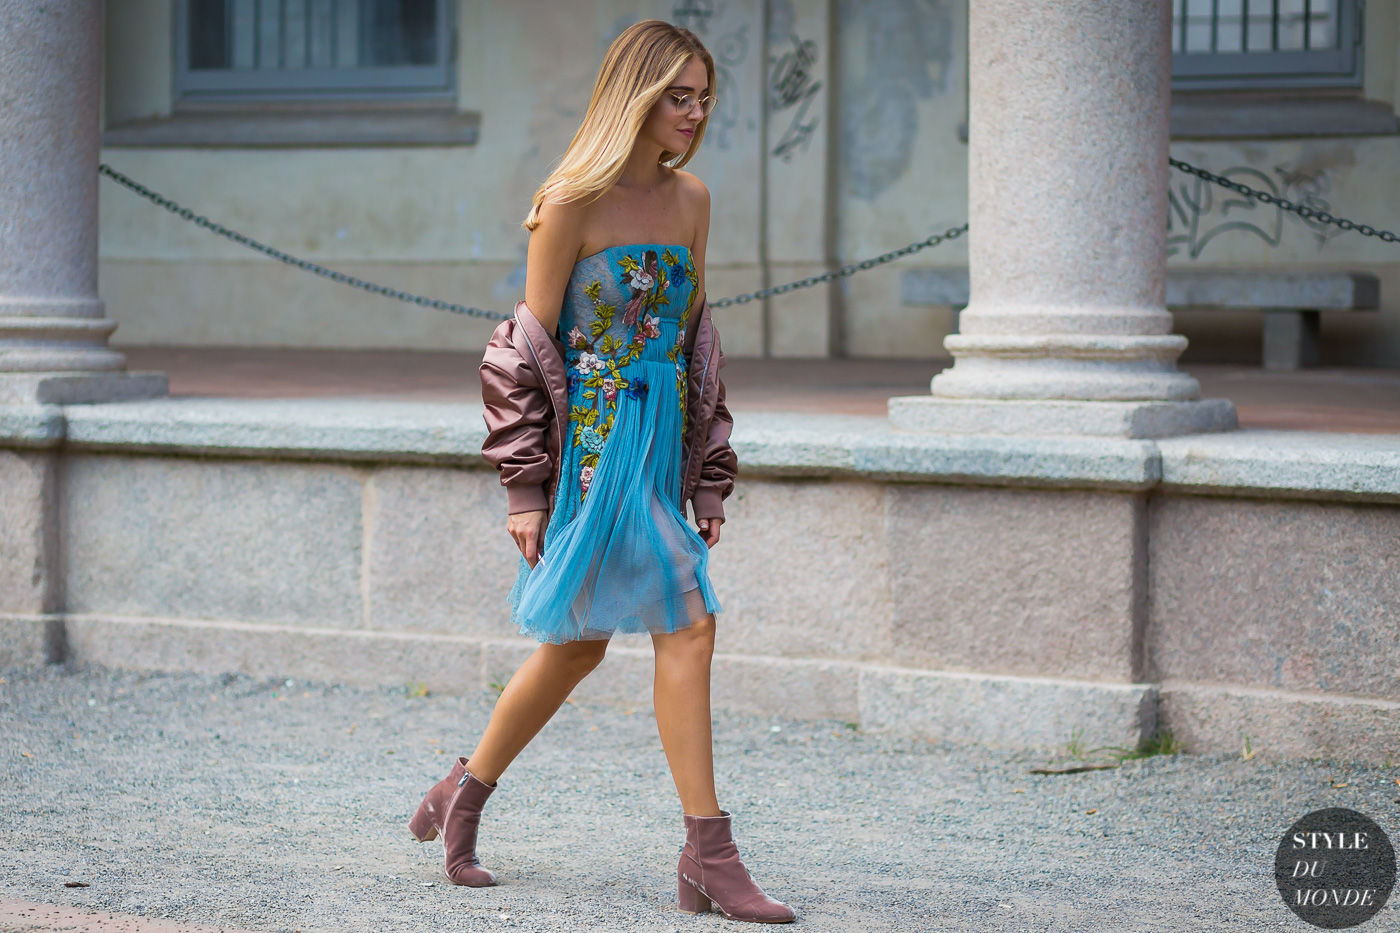 chiara-ferragni-by-styledumonde-street-style-fashion-photography